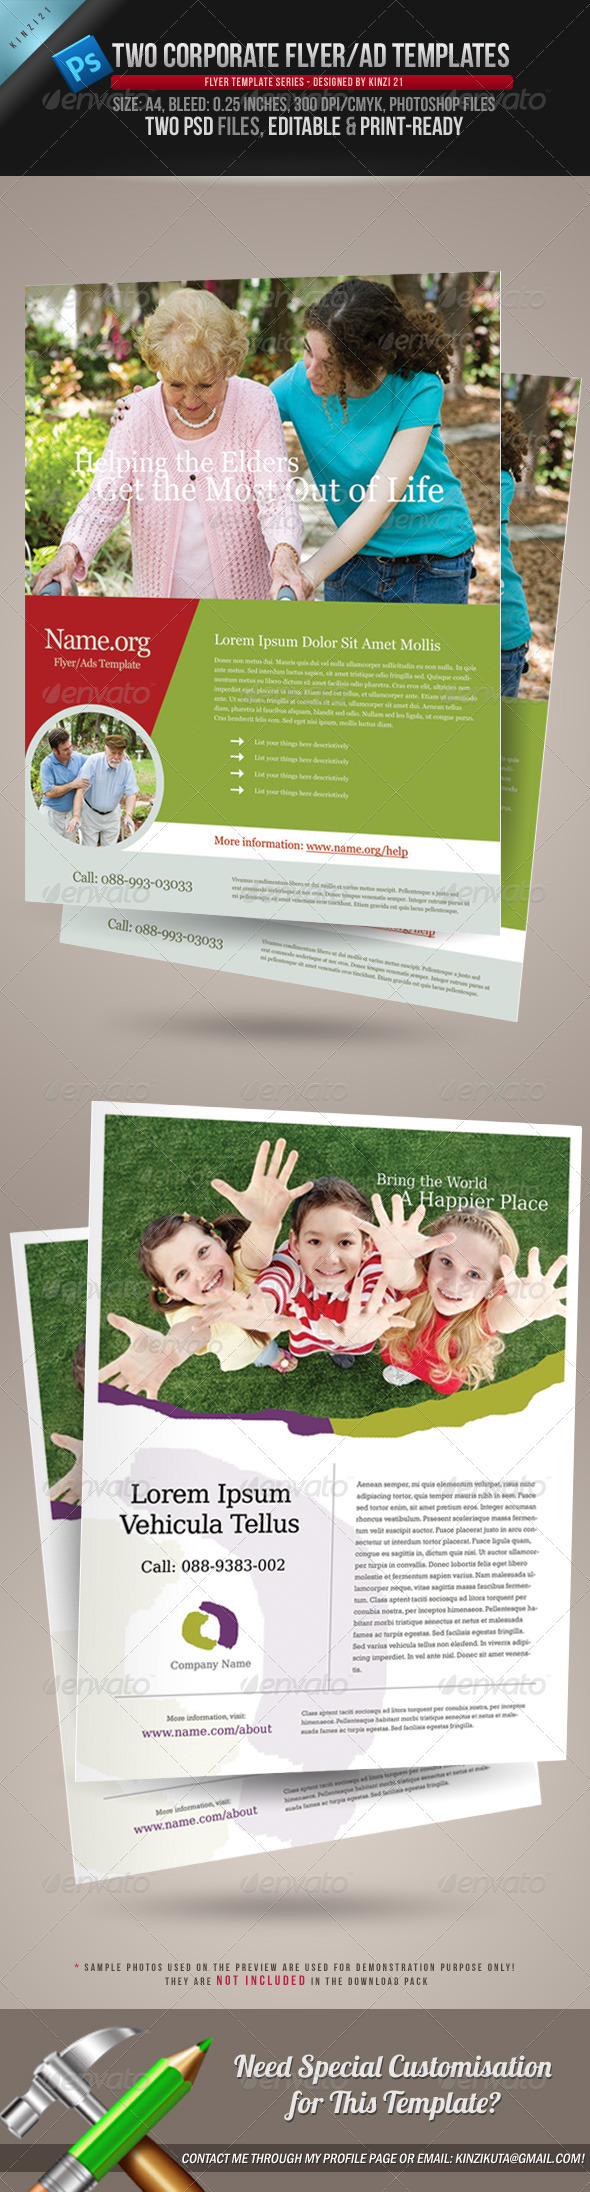 2 Corporate-Style Flyer/Ads Templates - Corporate Flyers